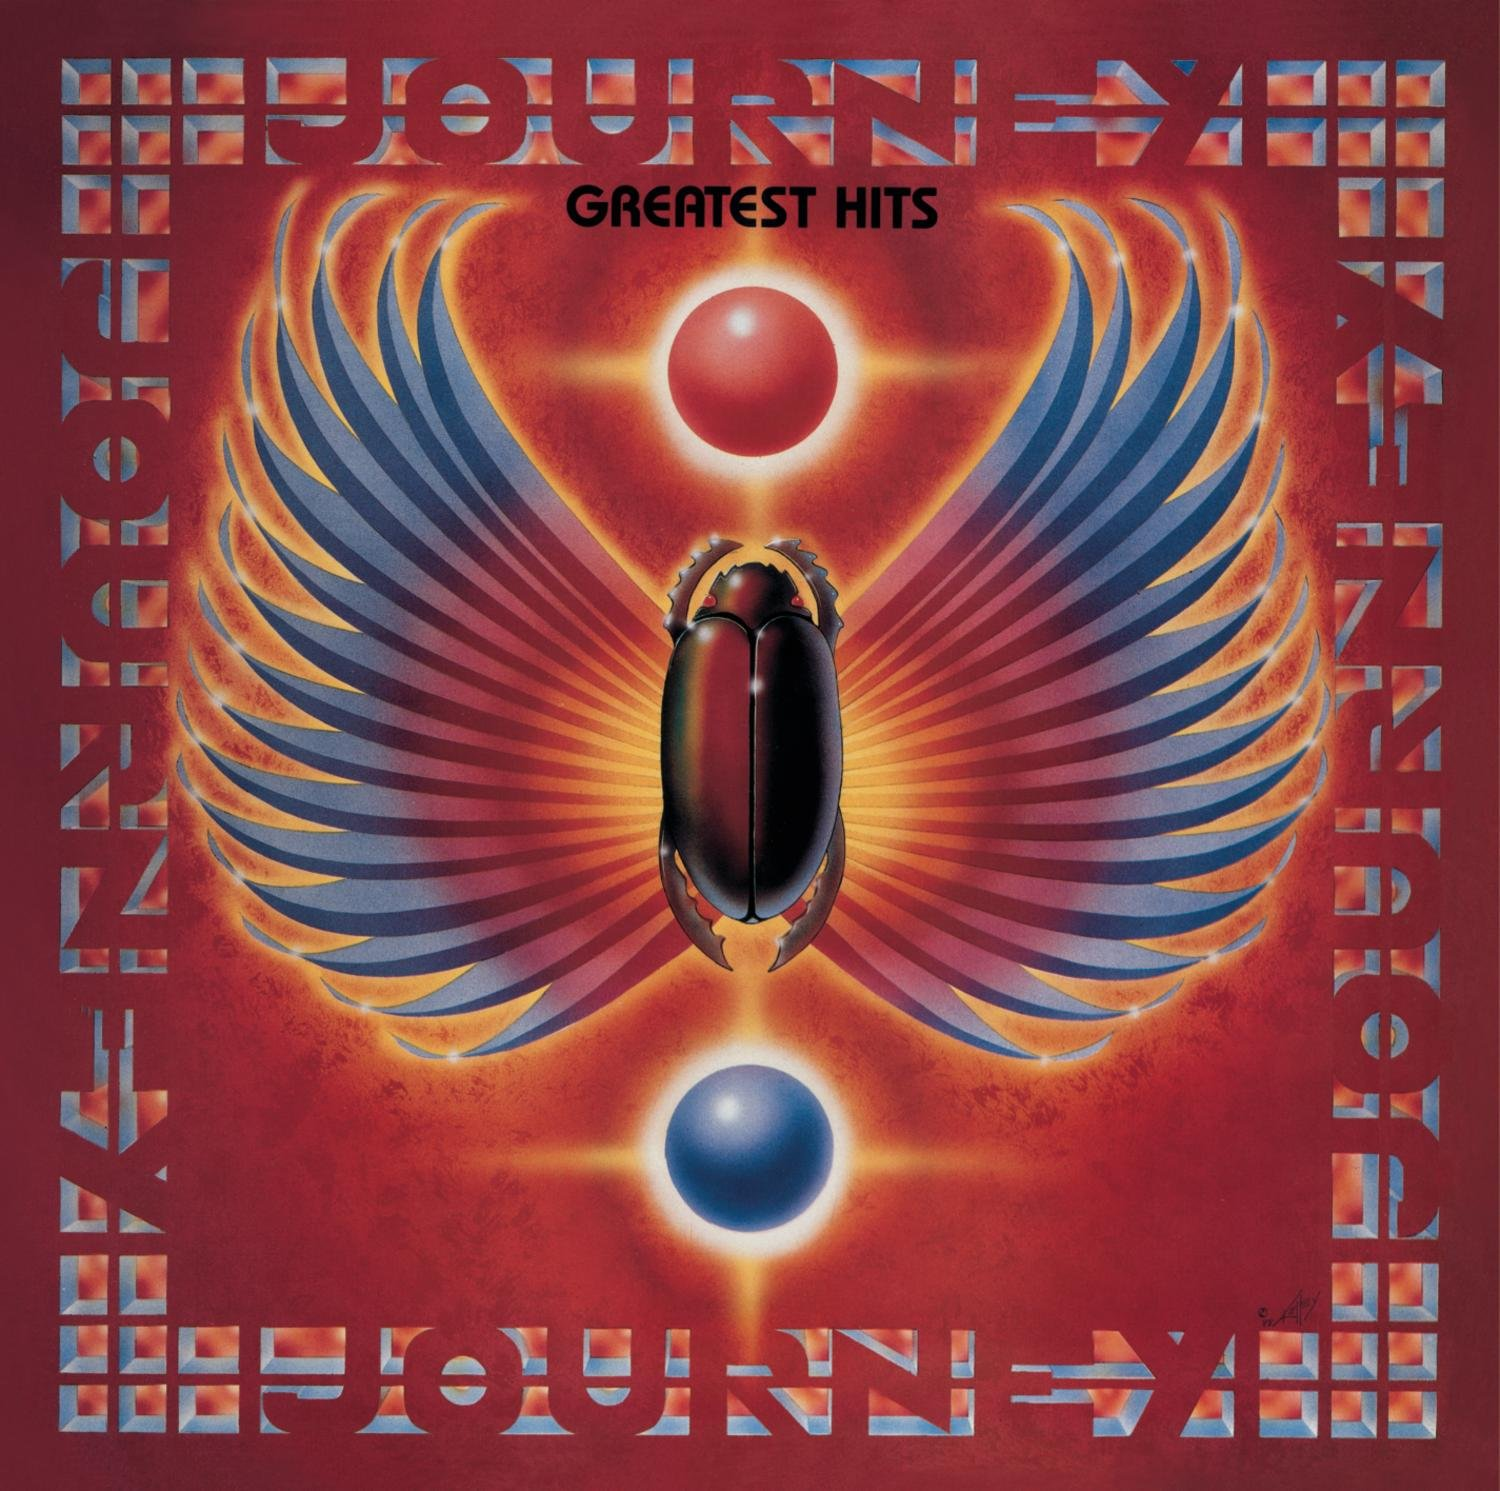 CD : Journey - Greatest Hits (Bonus Track, Expanded Version, Remastered, Digipack Packaging, Special Packaging)